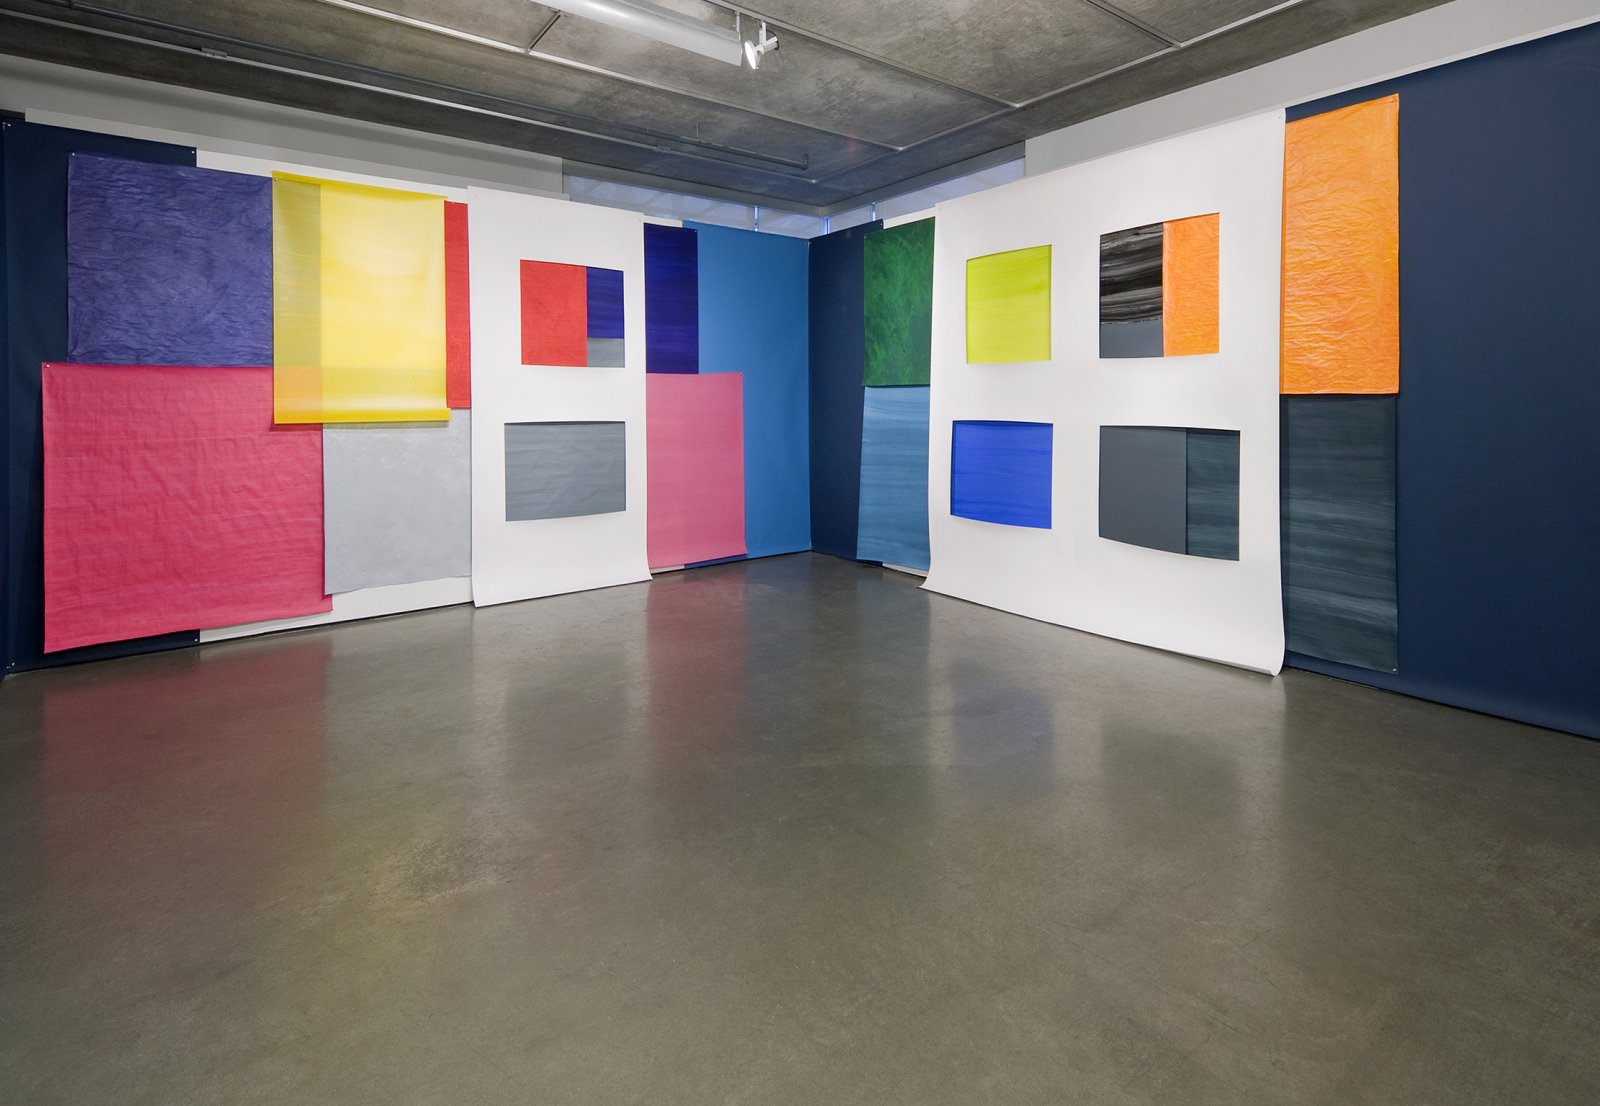 Elizabeth McIntosh, Colours From a Story, 2010, photo backdrop paper, vellum gouache, acrylic paint, dimensions variable. Installation view, Violet's Hair, Contemporary Art Gallery, Vancouver, 2010 by Elizabeth McIntosh